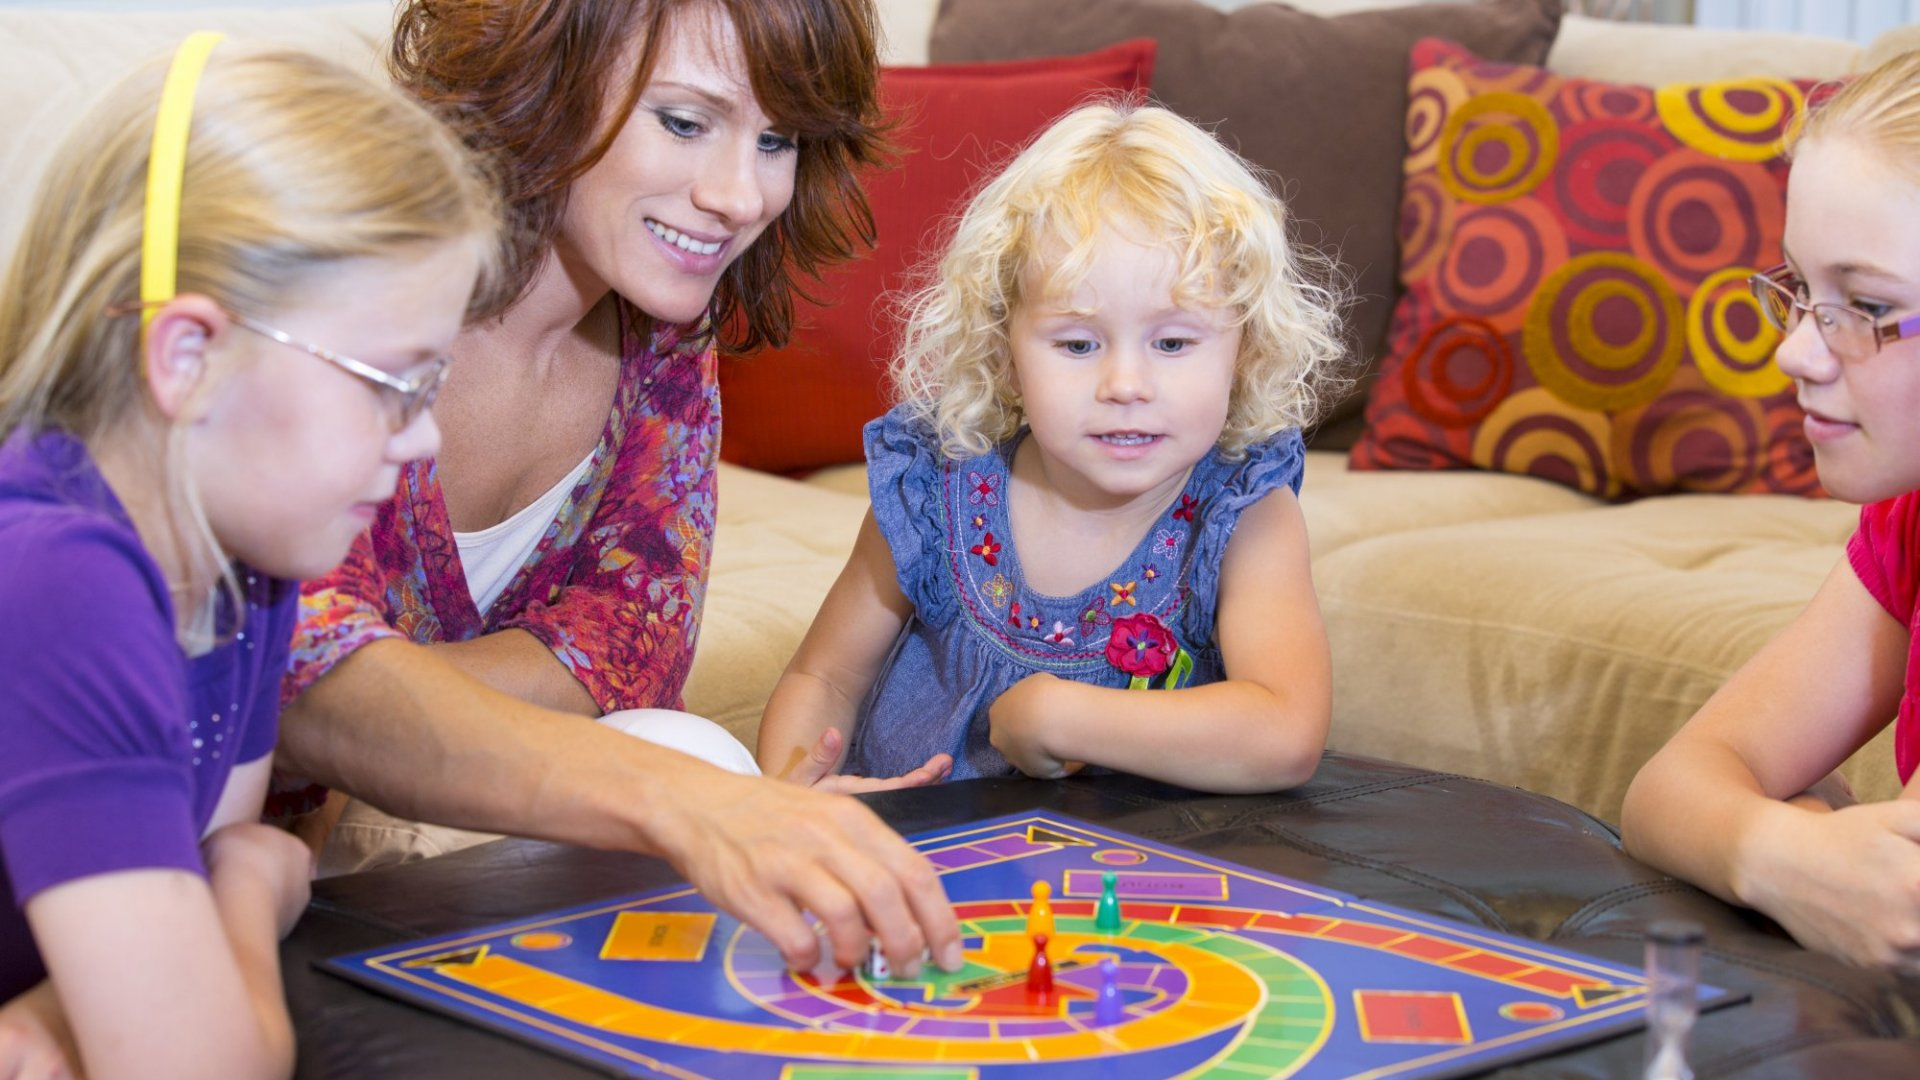 Board games can help build cooperative skills for life - if you pick the right ones.